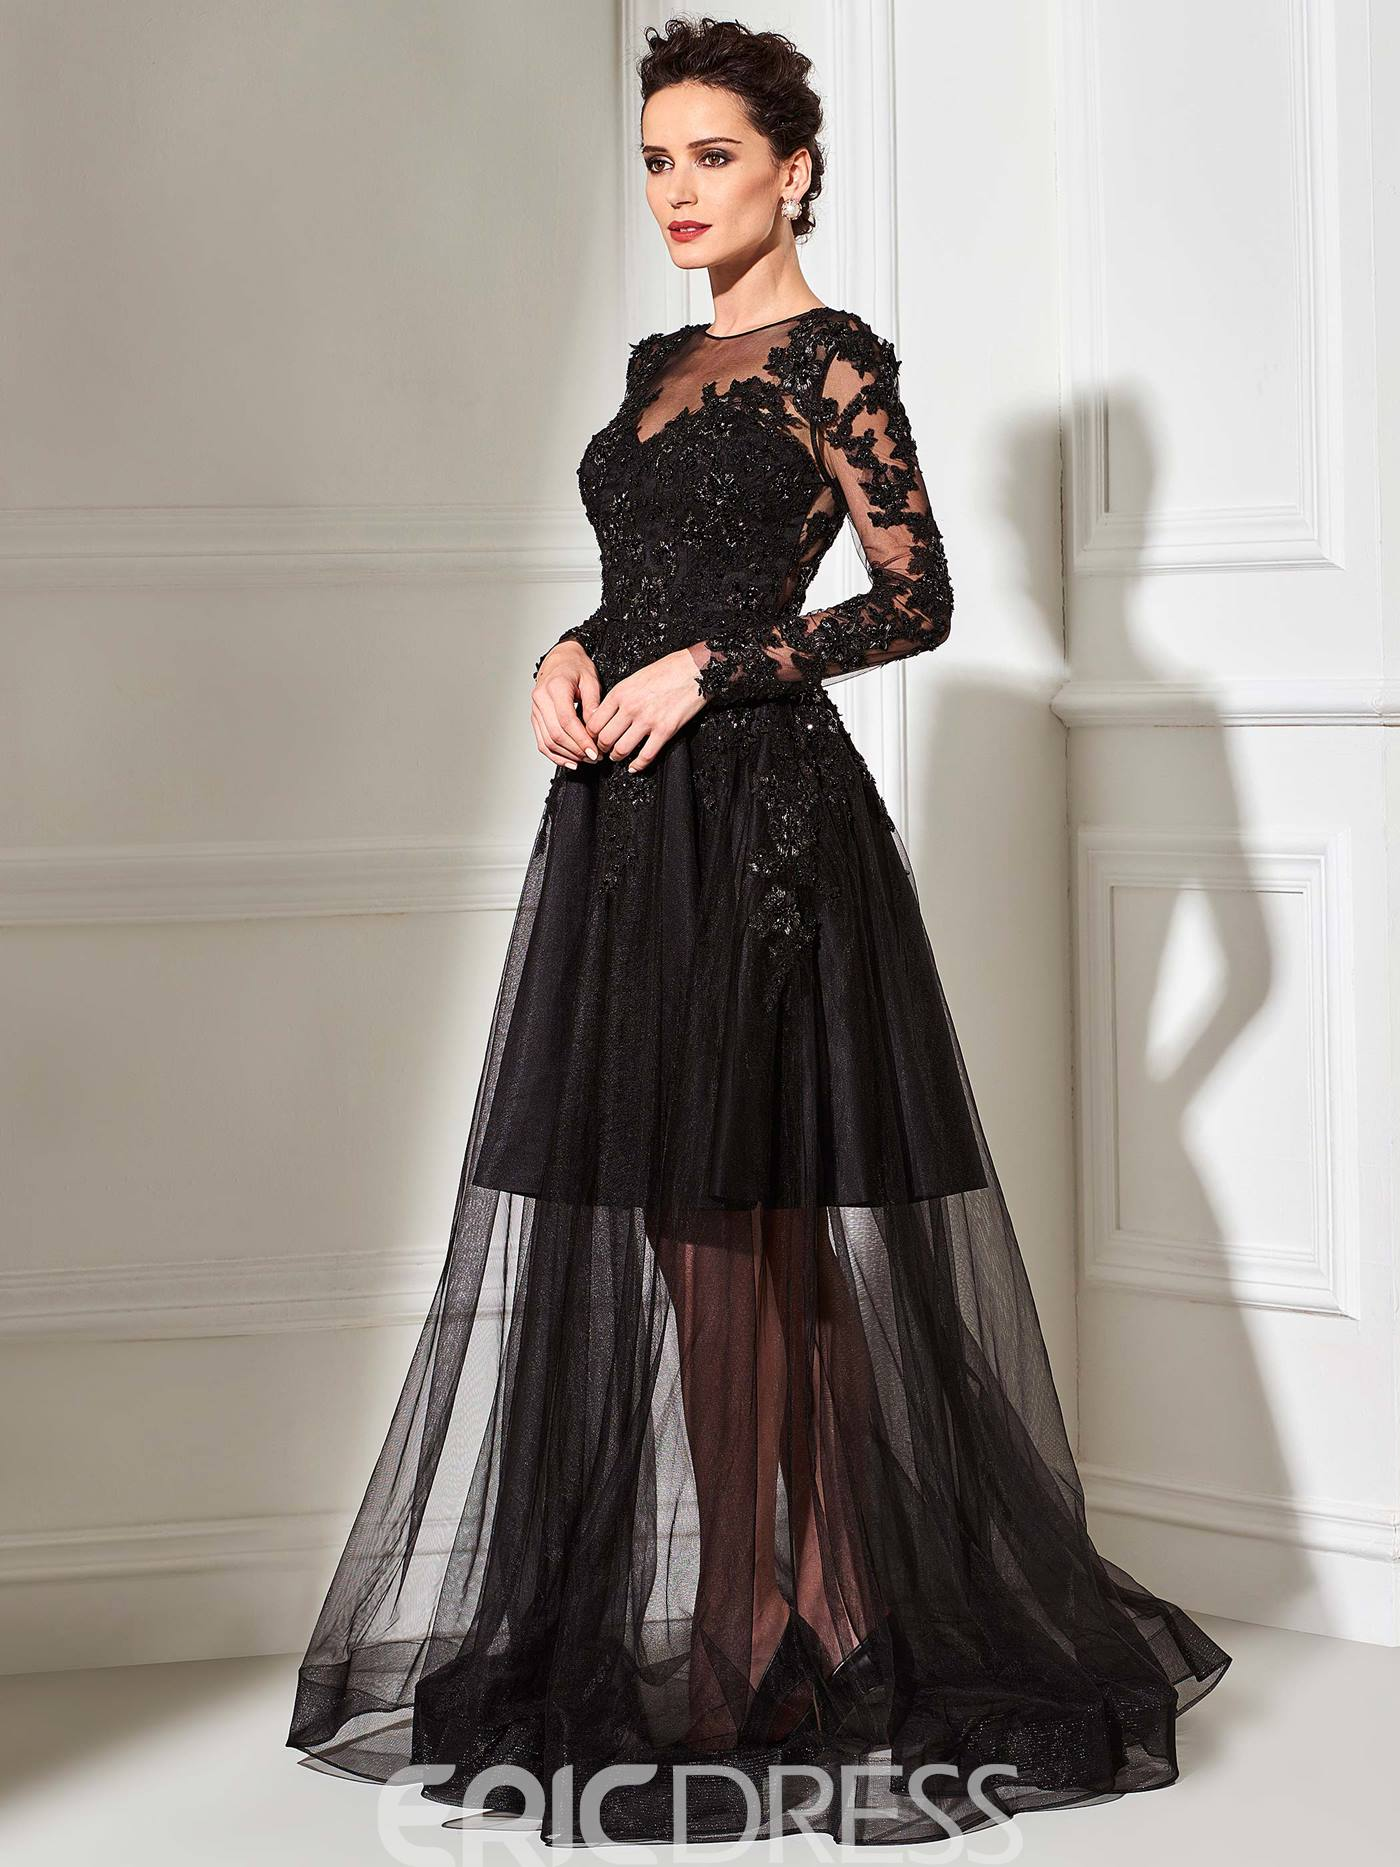 Ericdress A-Line Scoop Neck Long Sleeves Sheer Tulle Appliques Evening Dress